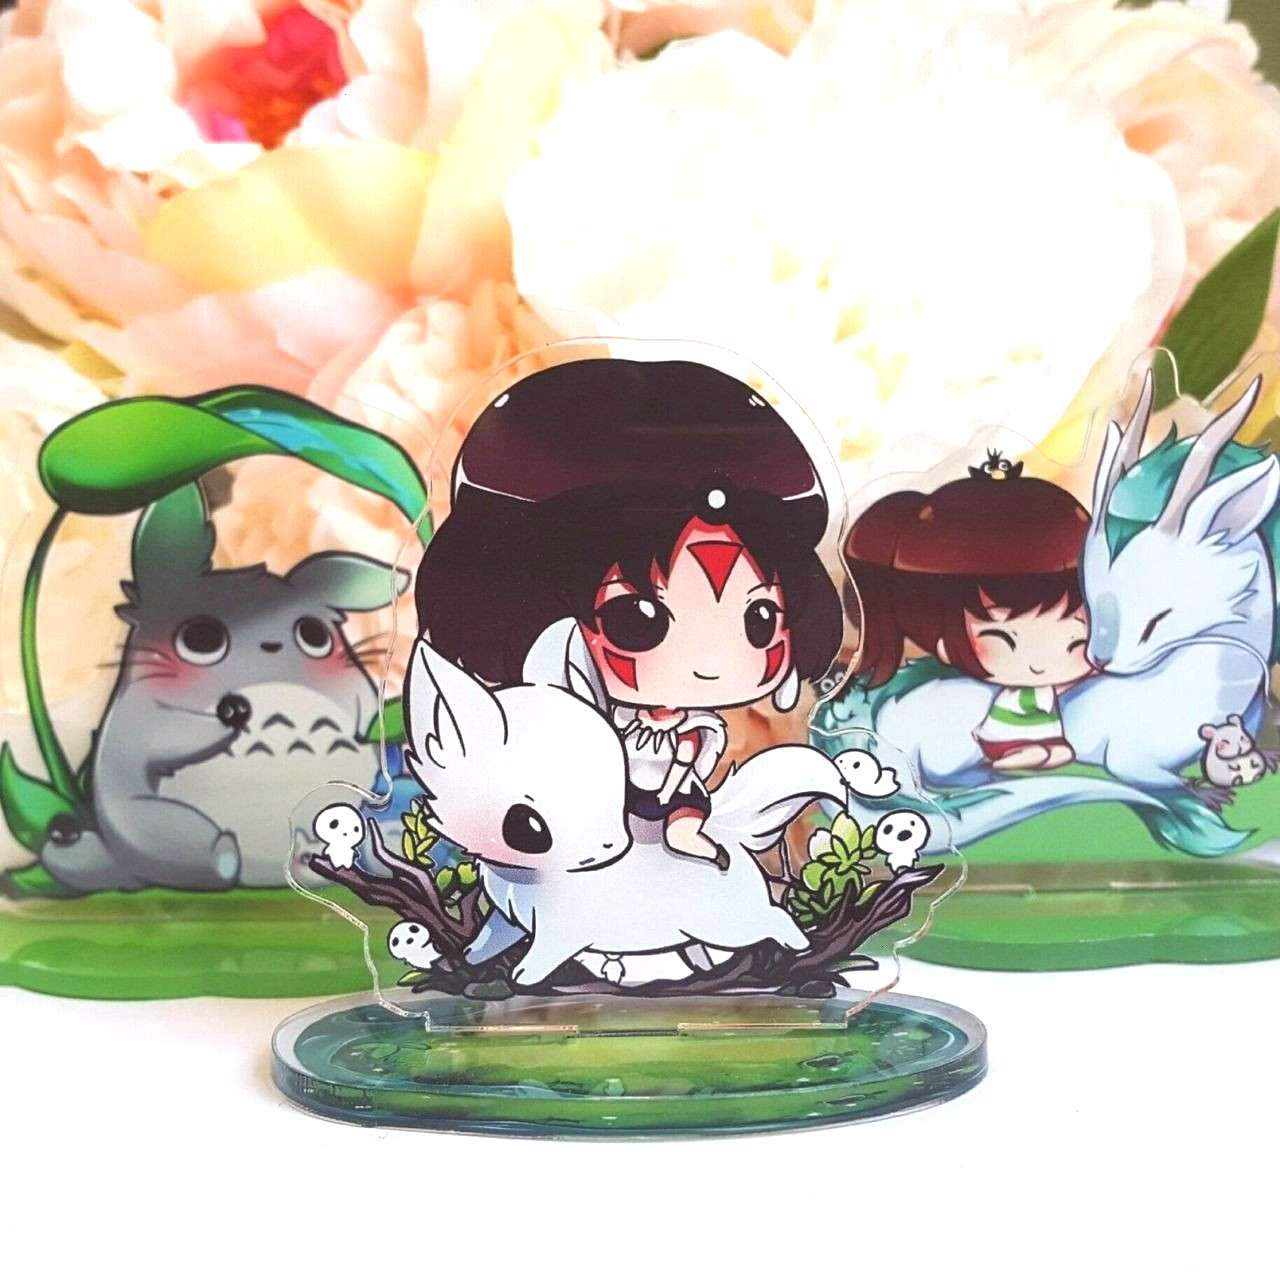 Ghibli Standees  Weishi Art on Etsy  See our or Ghibli tags -Studio Ghibli Standees  Weishi Art on